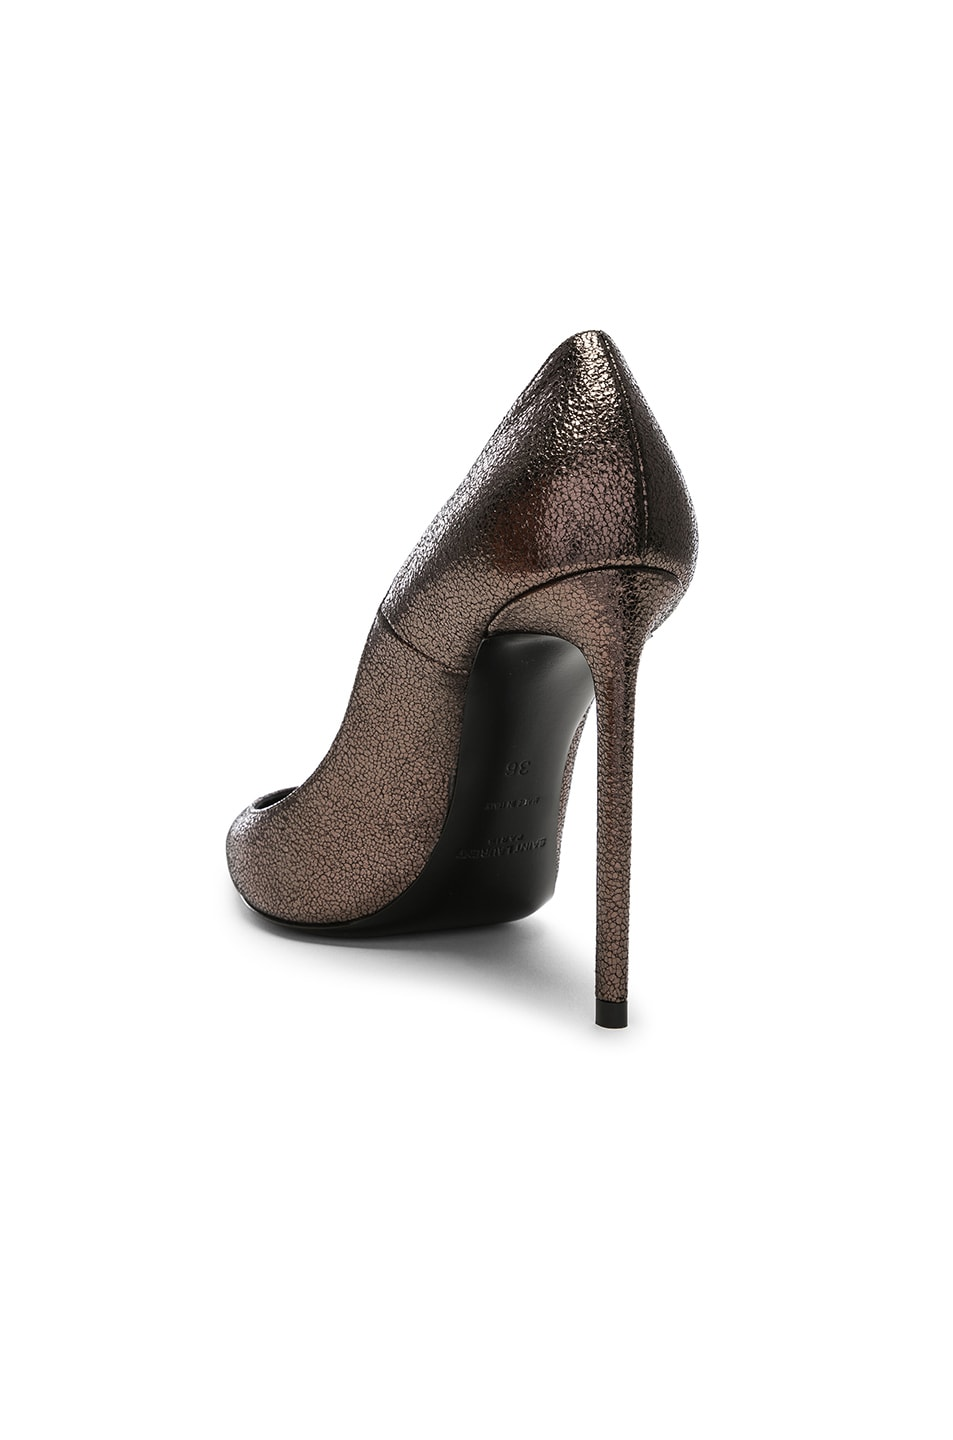 Image 3 of Saint Laurent Zoe Pumps in Gunmetal